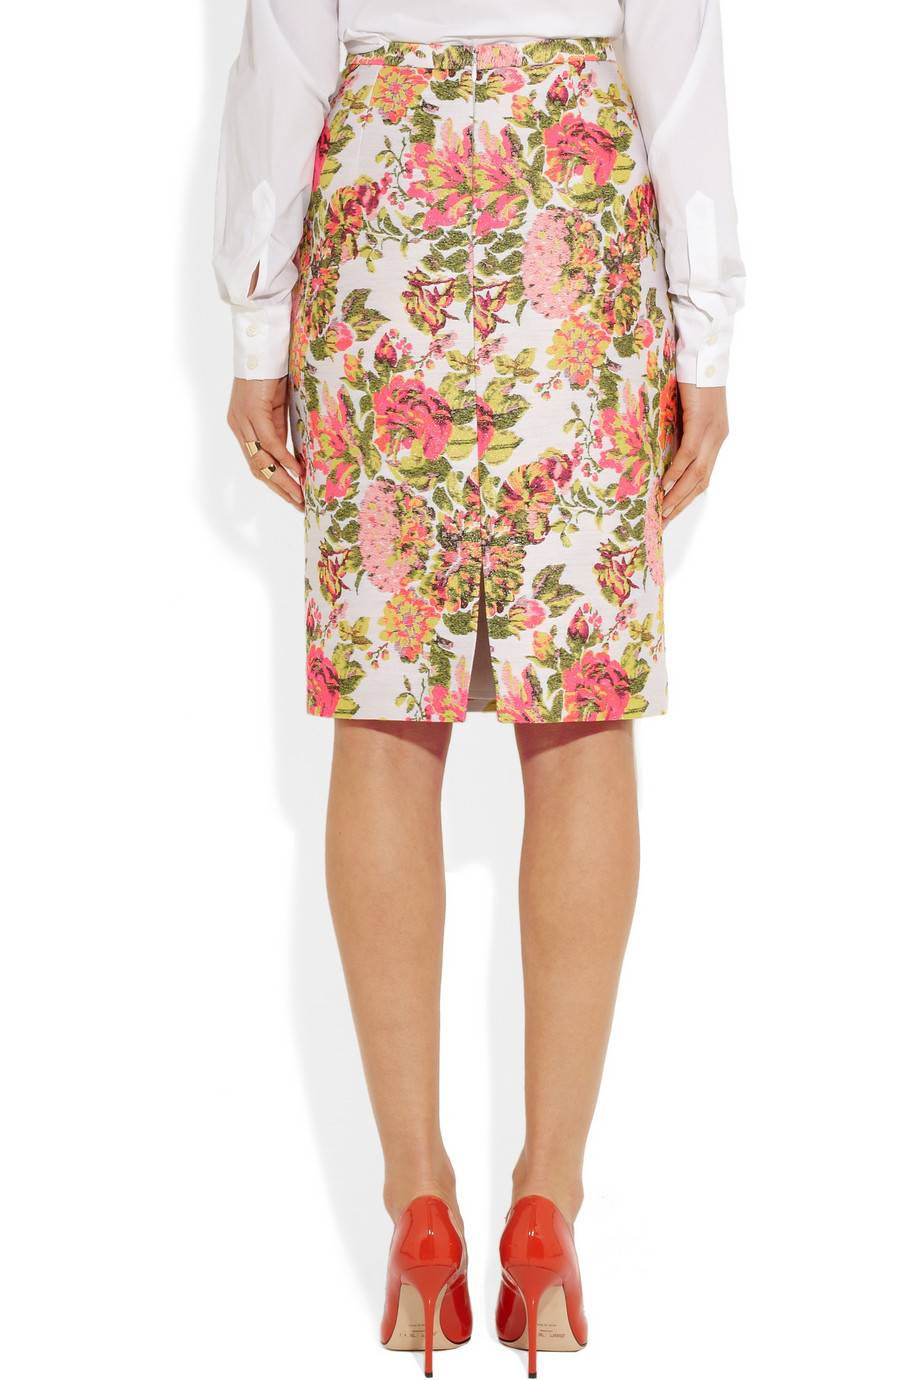 Stella mccartney neon floral jacquard pencil skirt – 65% at the outnet.com